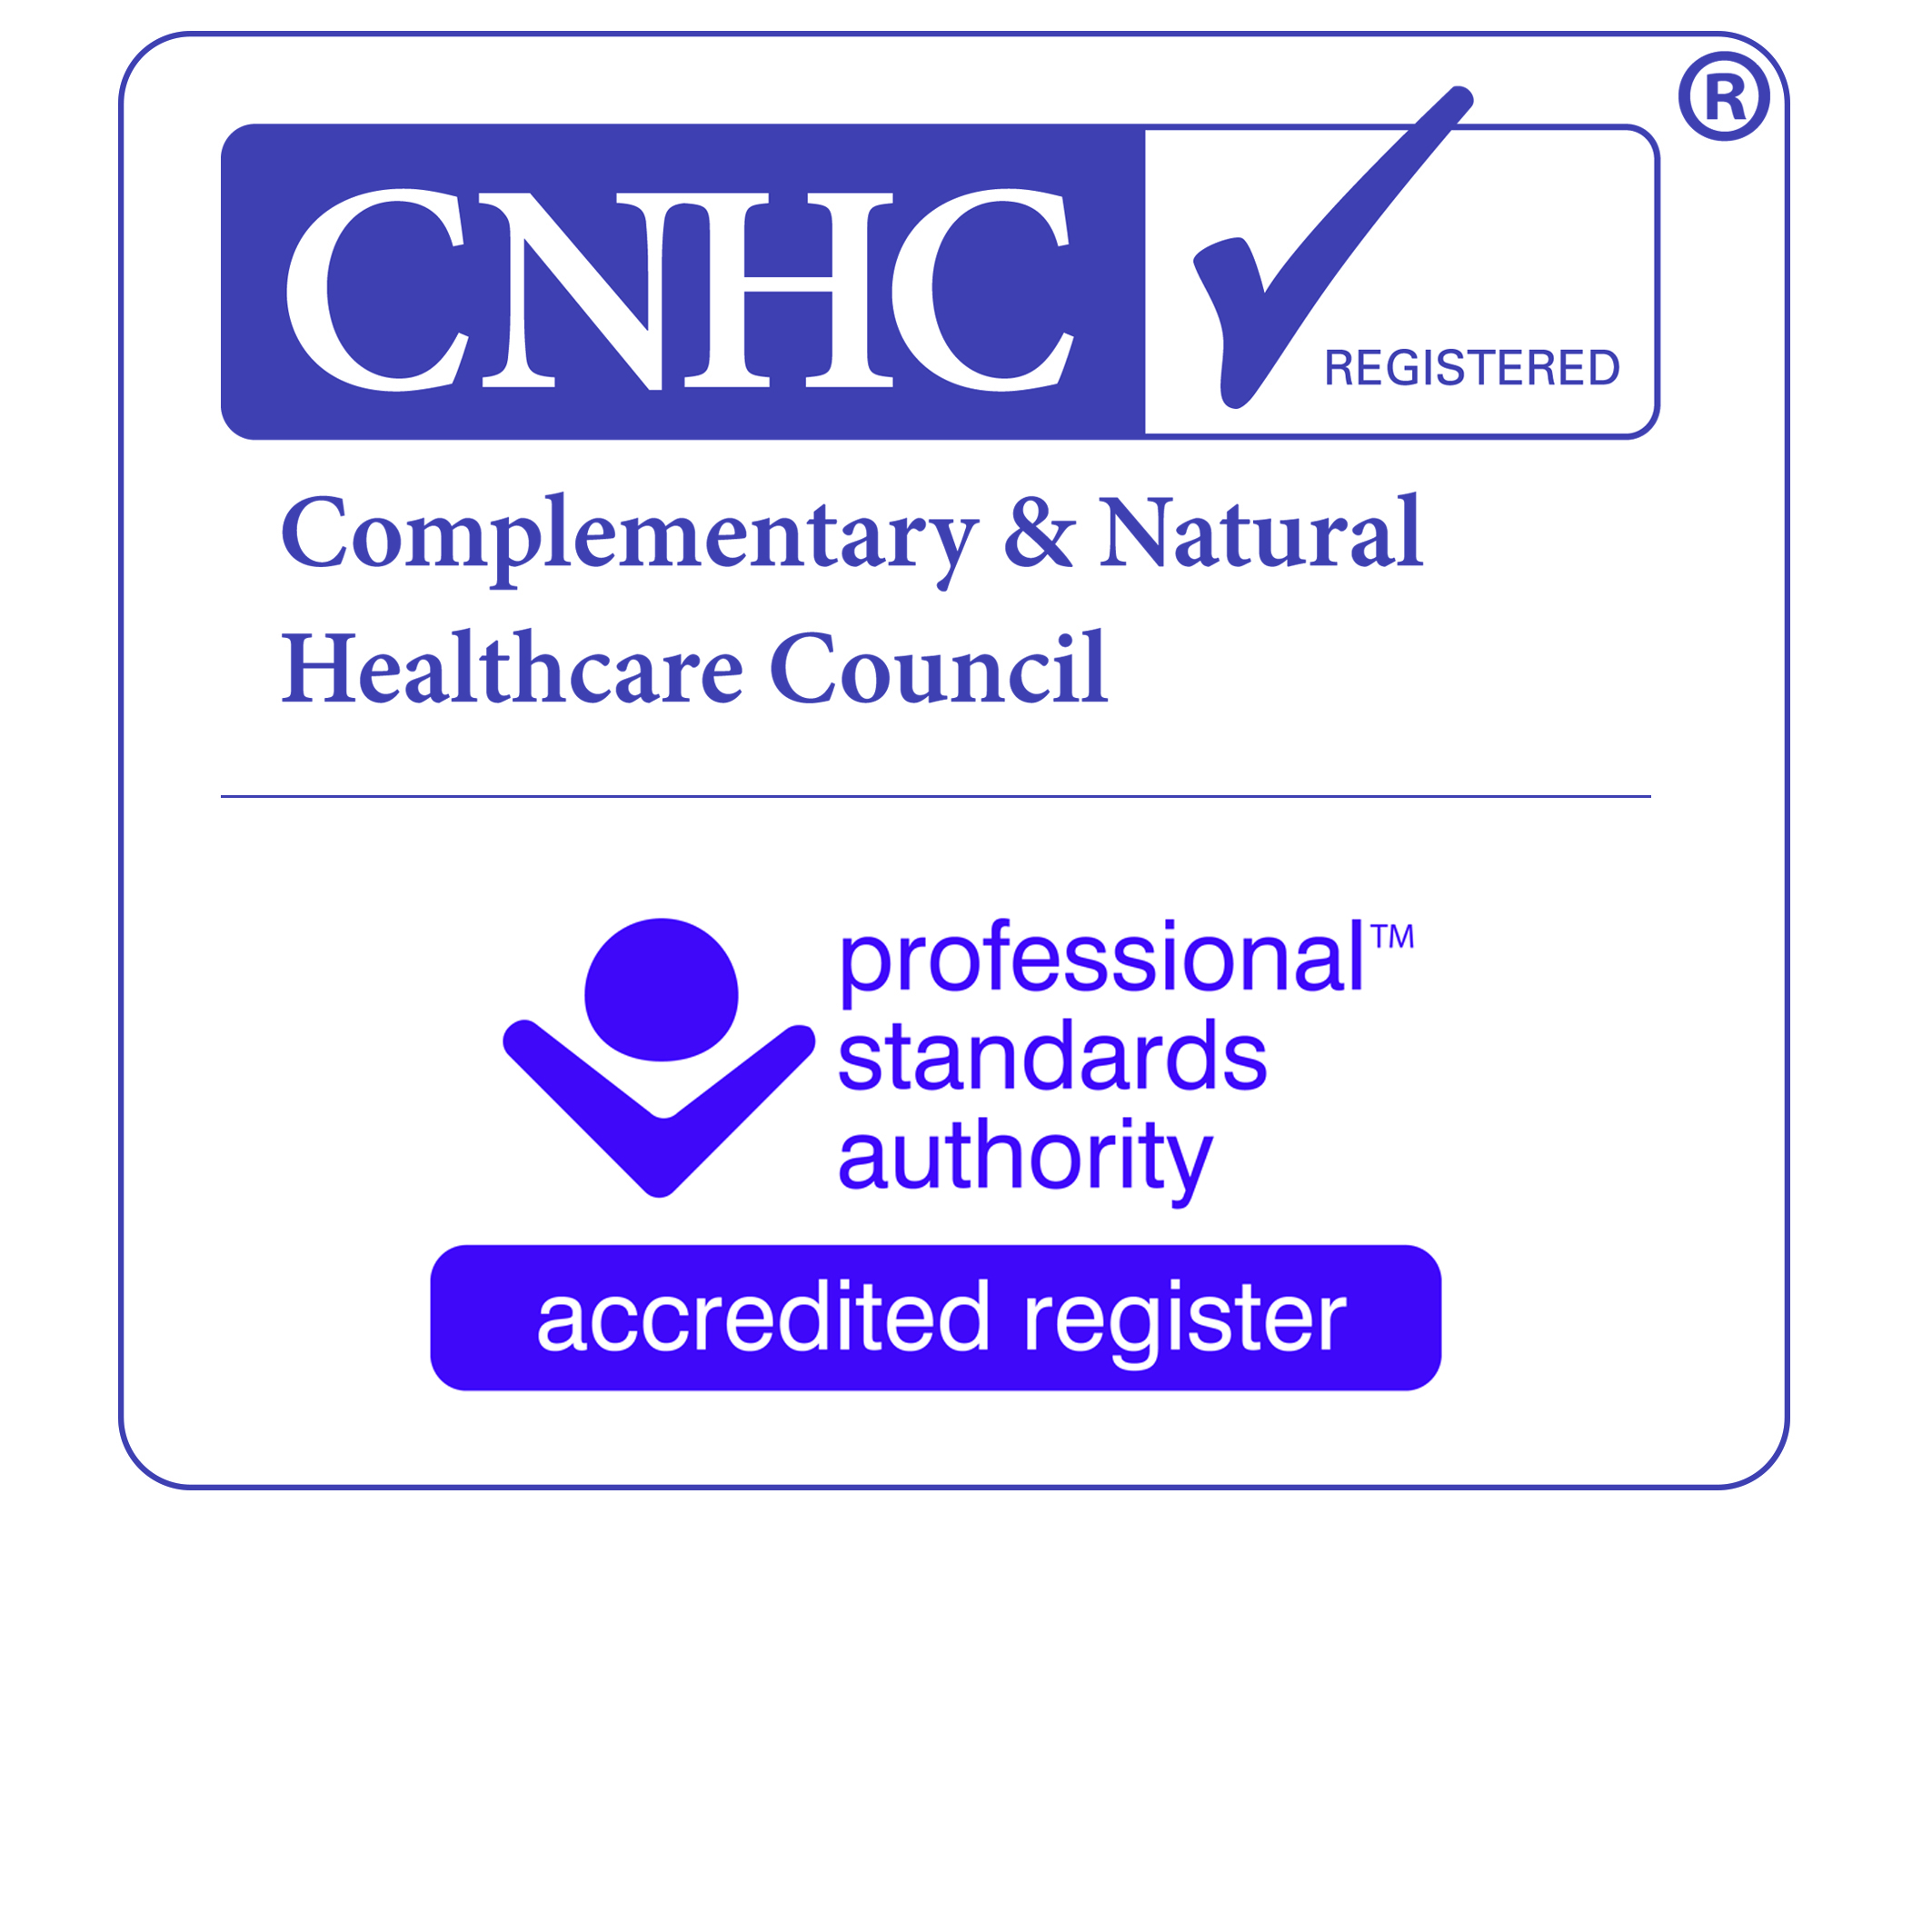 CNHC Registration Logo